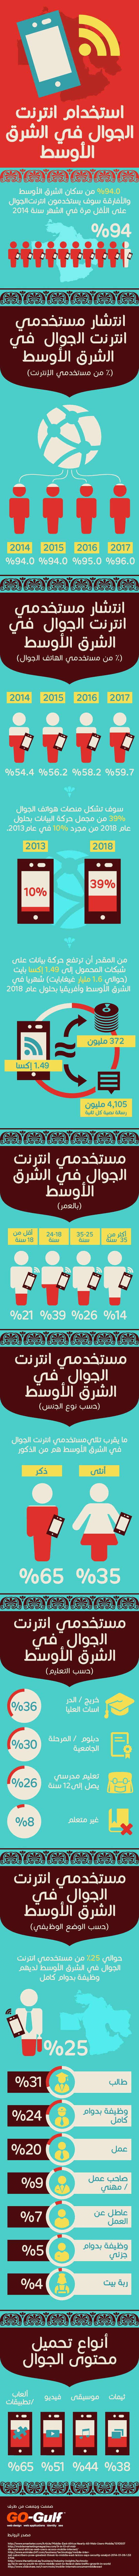 Mobile Internet Usage in the Middle East - Editable